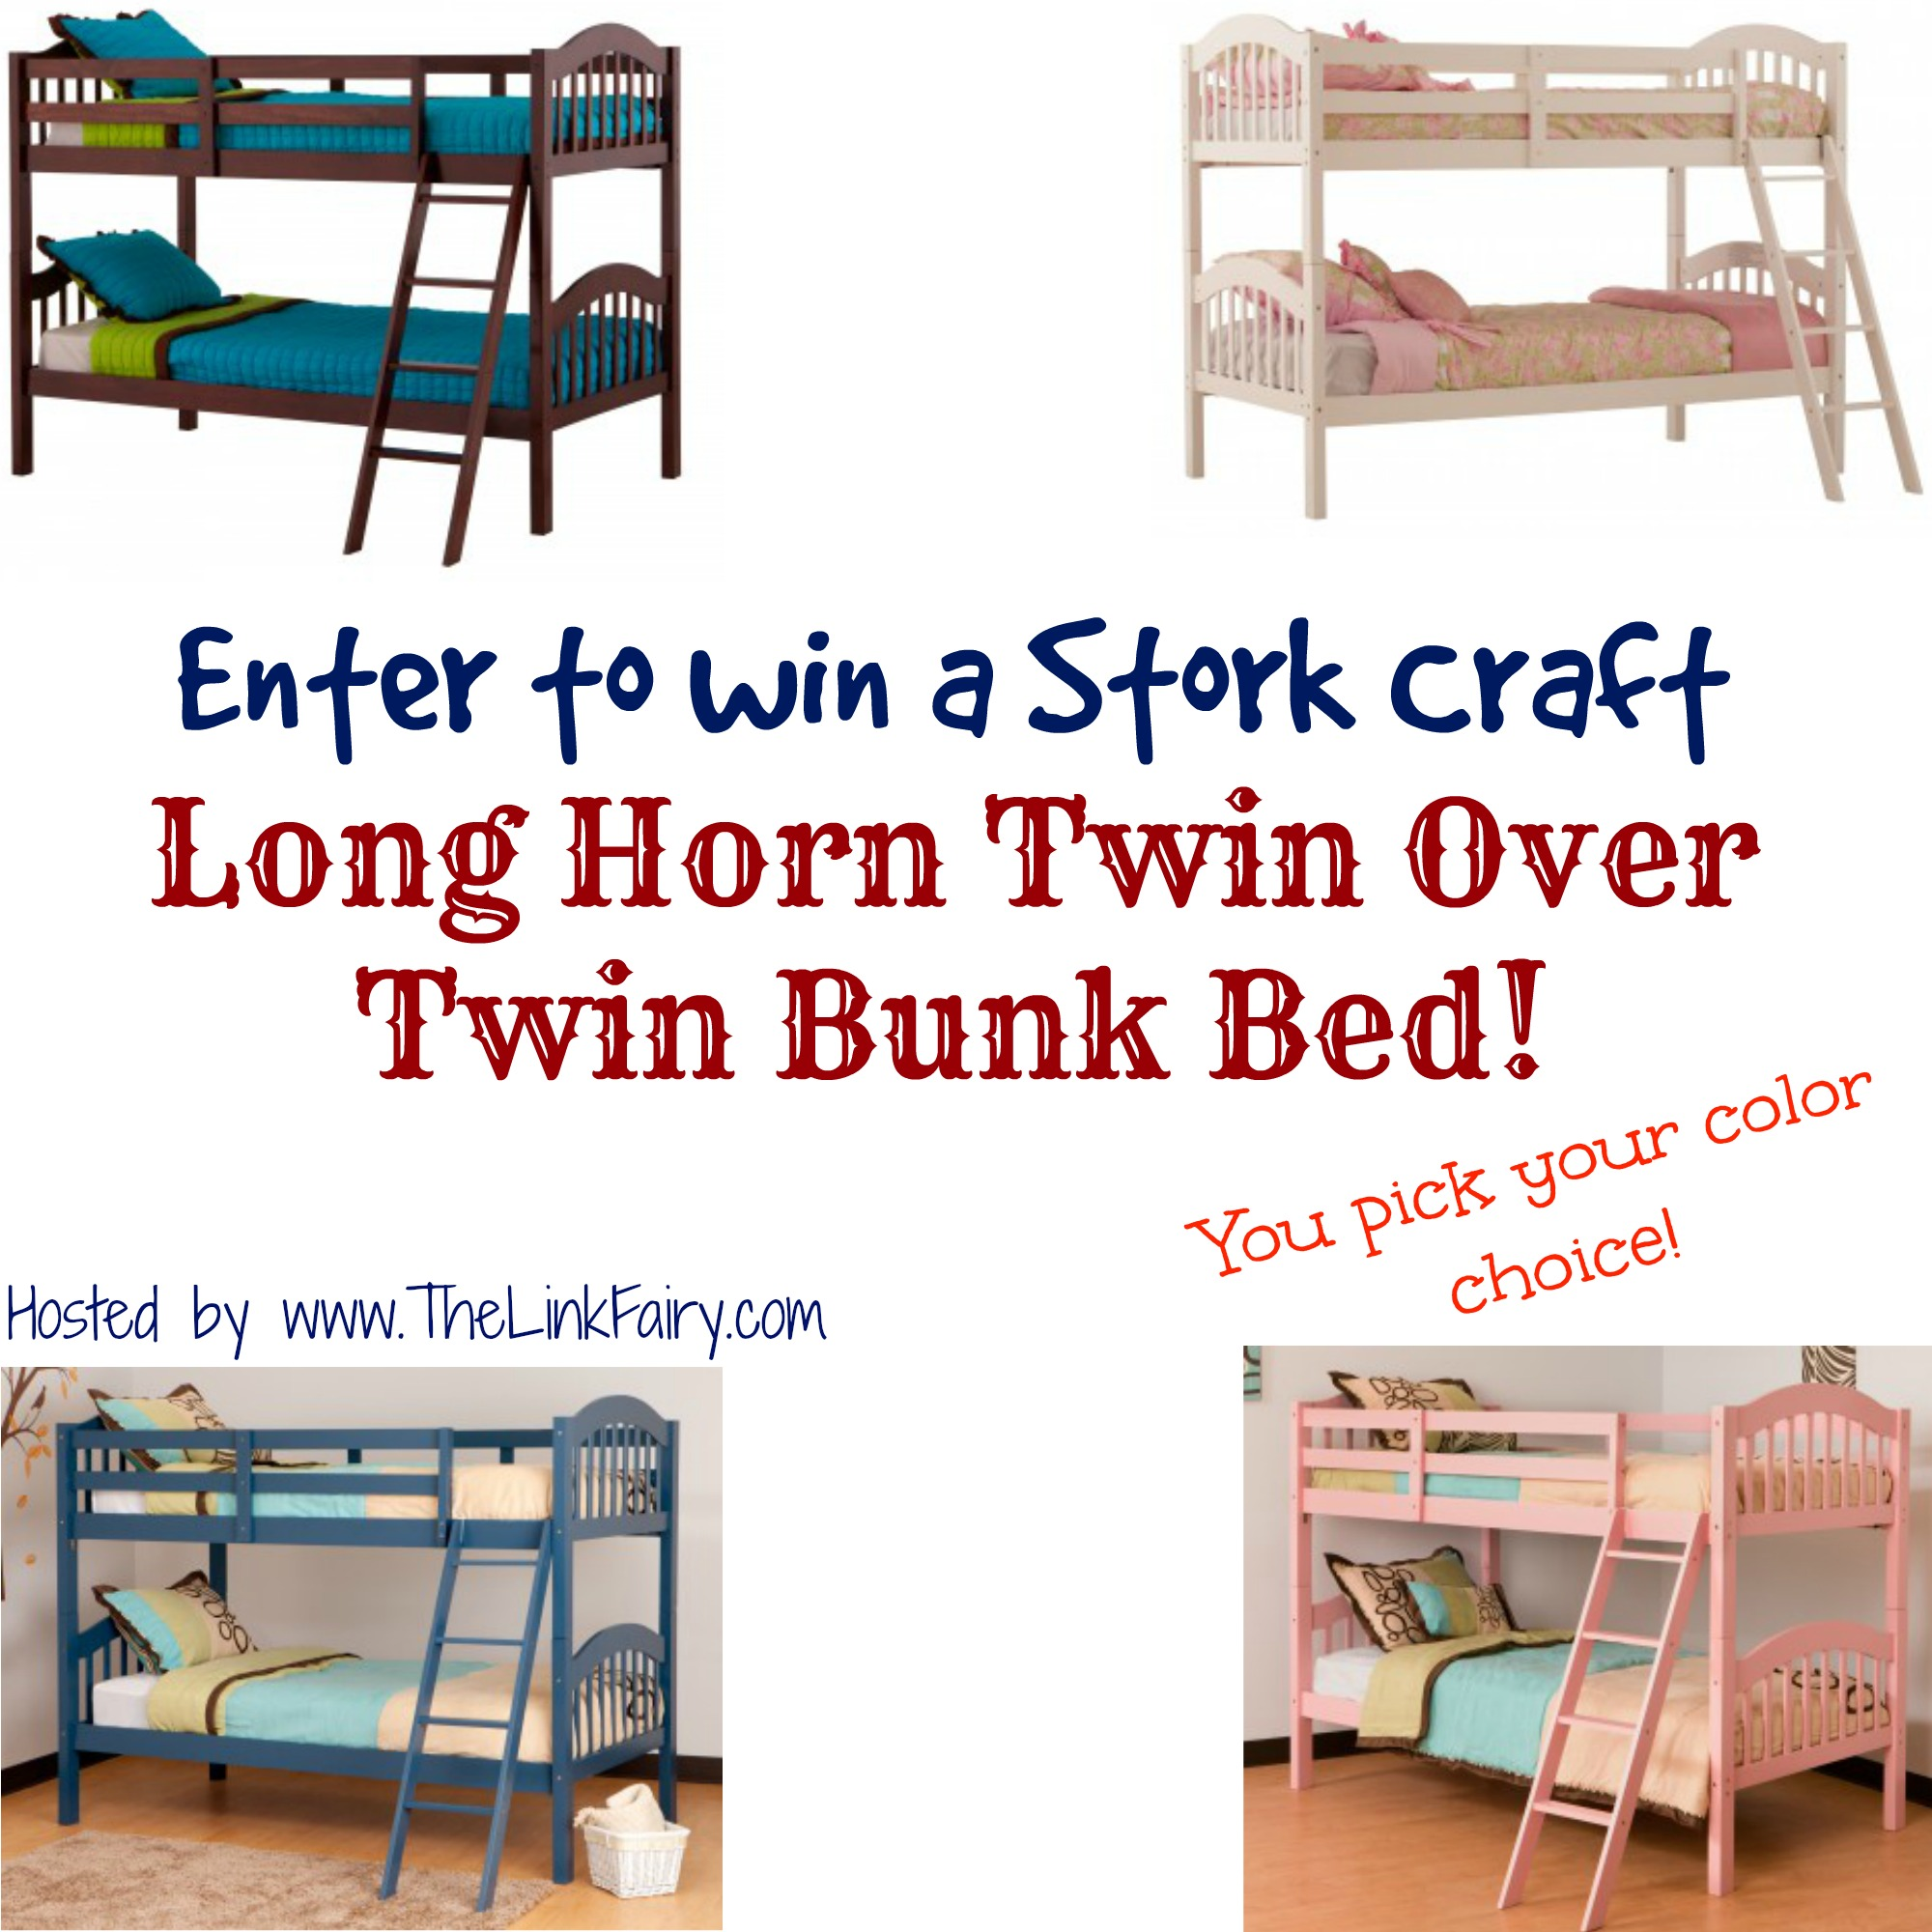 Stork Craft Long Horn Twin Over Twin Bunk Bed Giveaway Jet